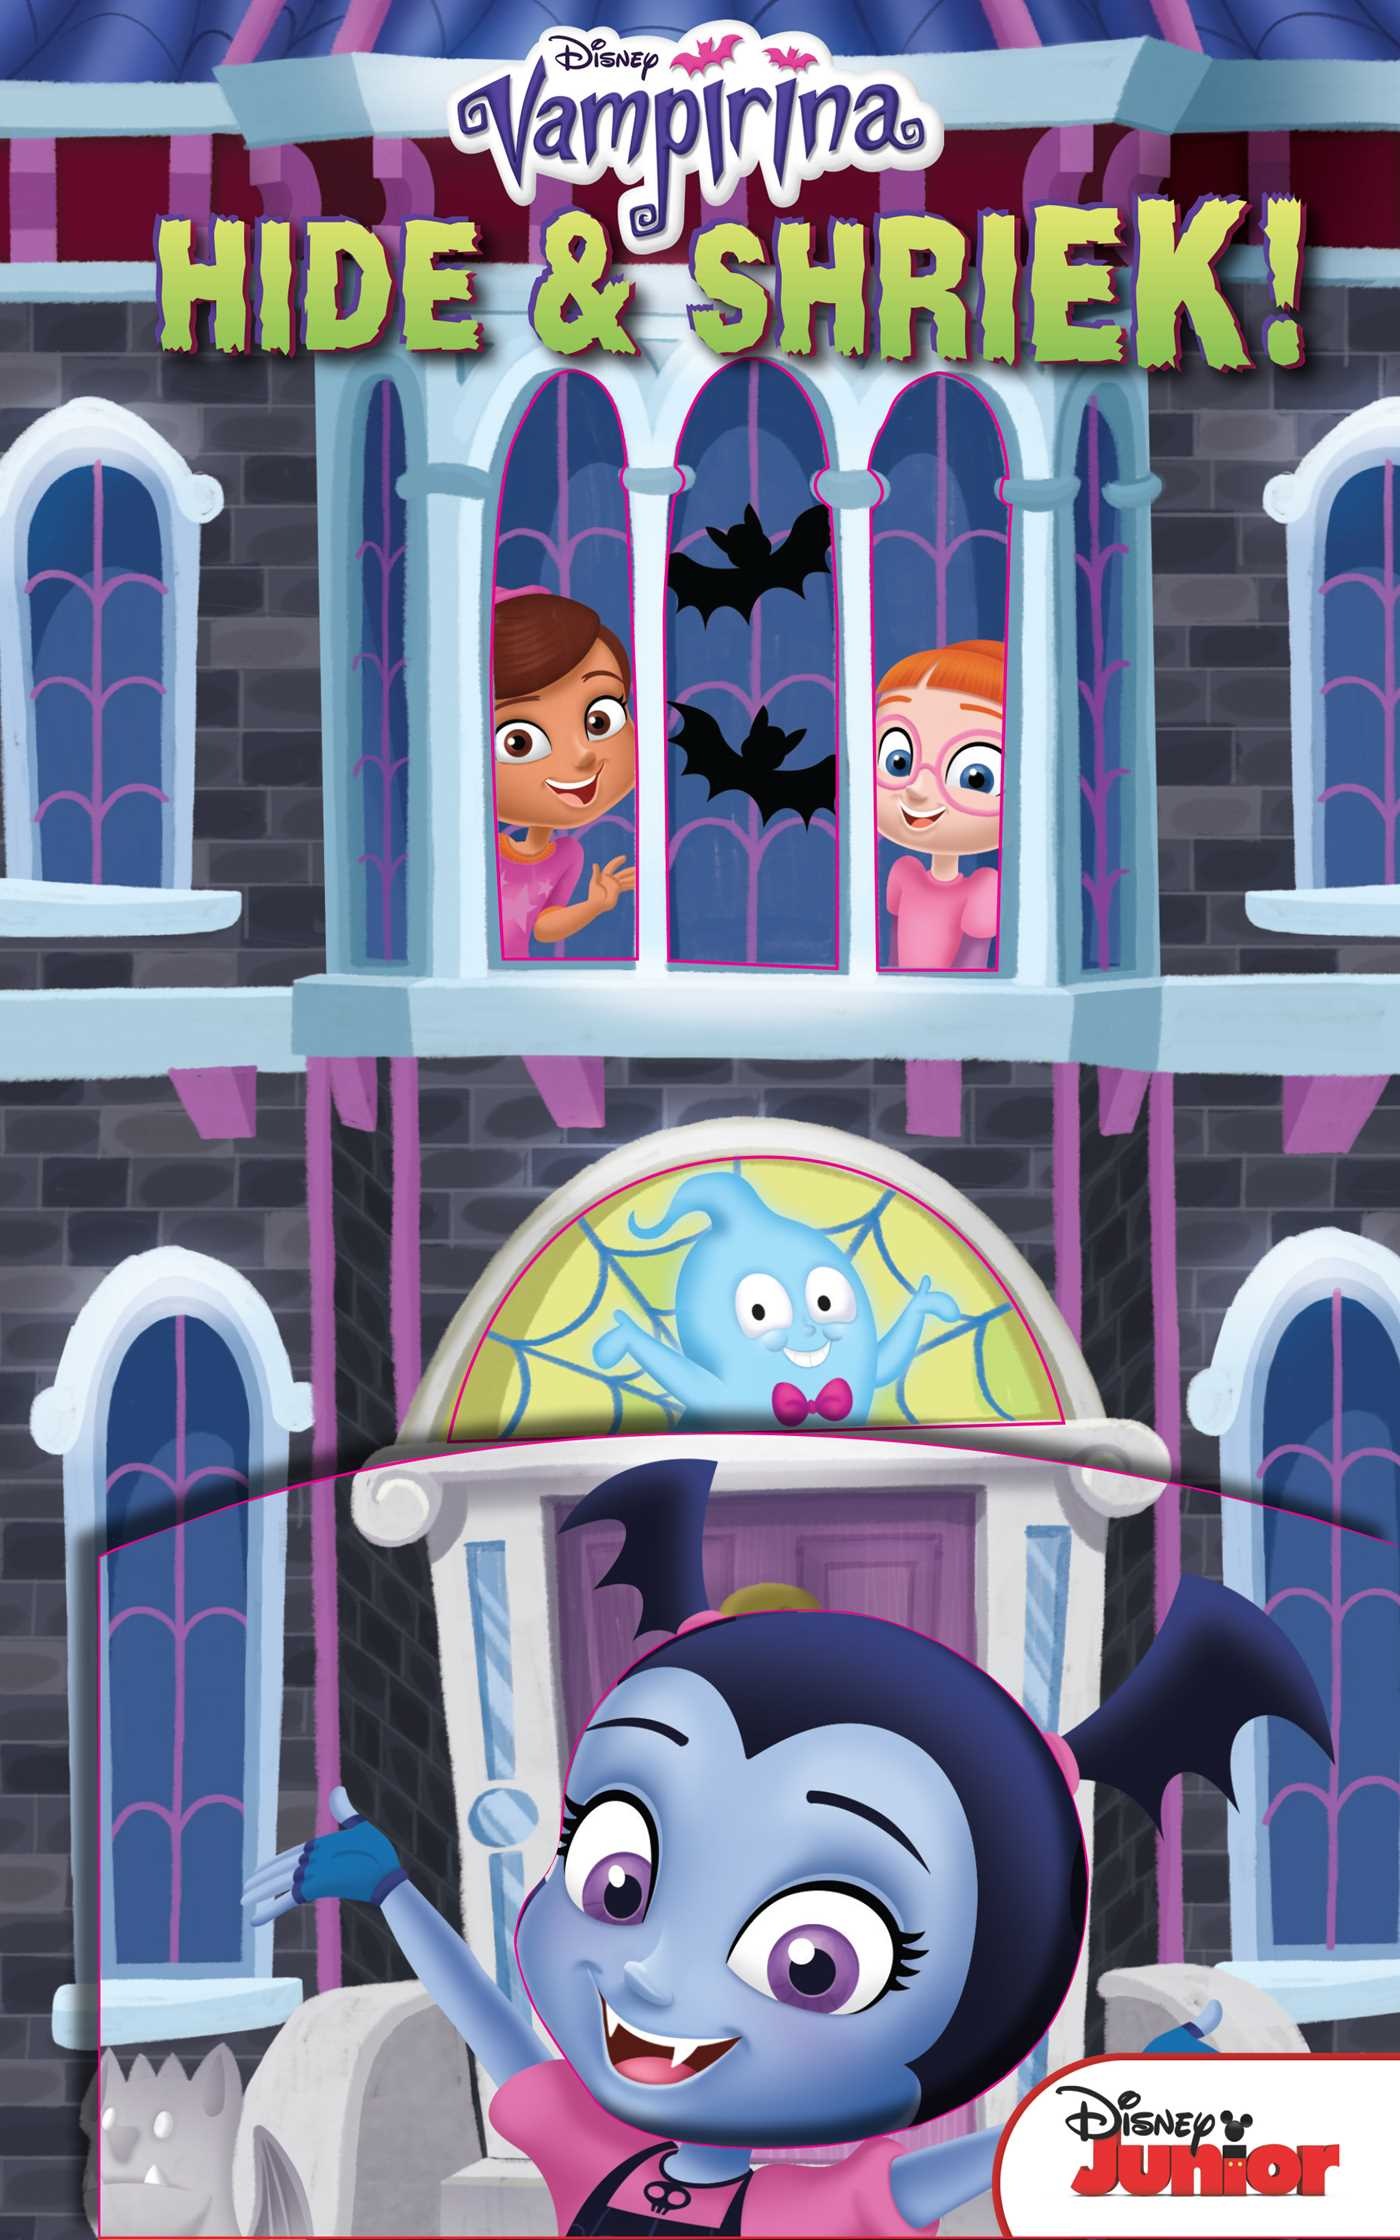 Disney vampirina guess who hide shriek 9780794441524 hr